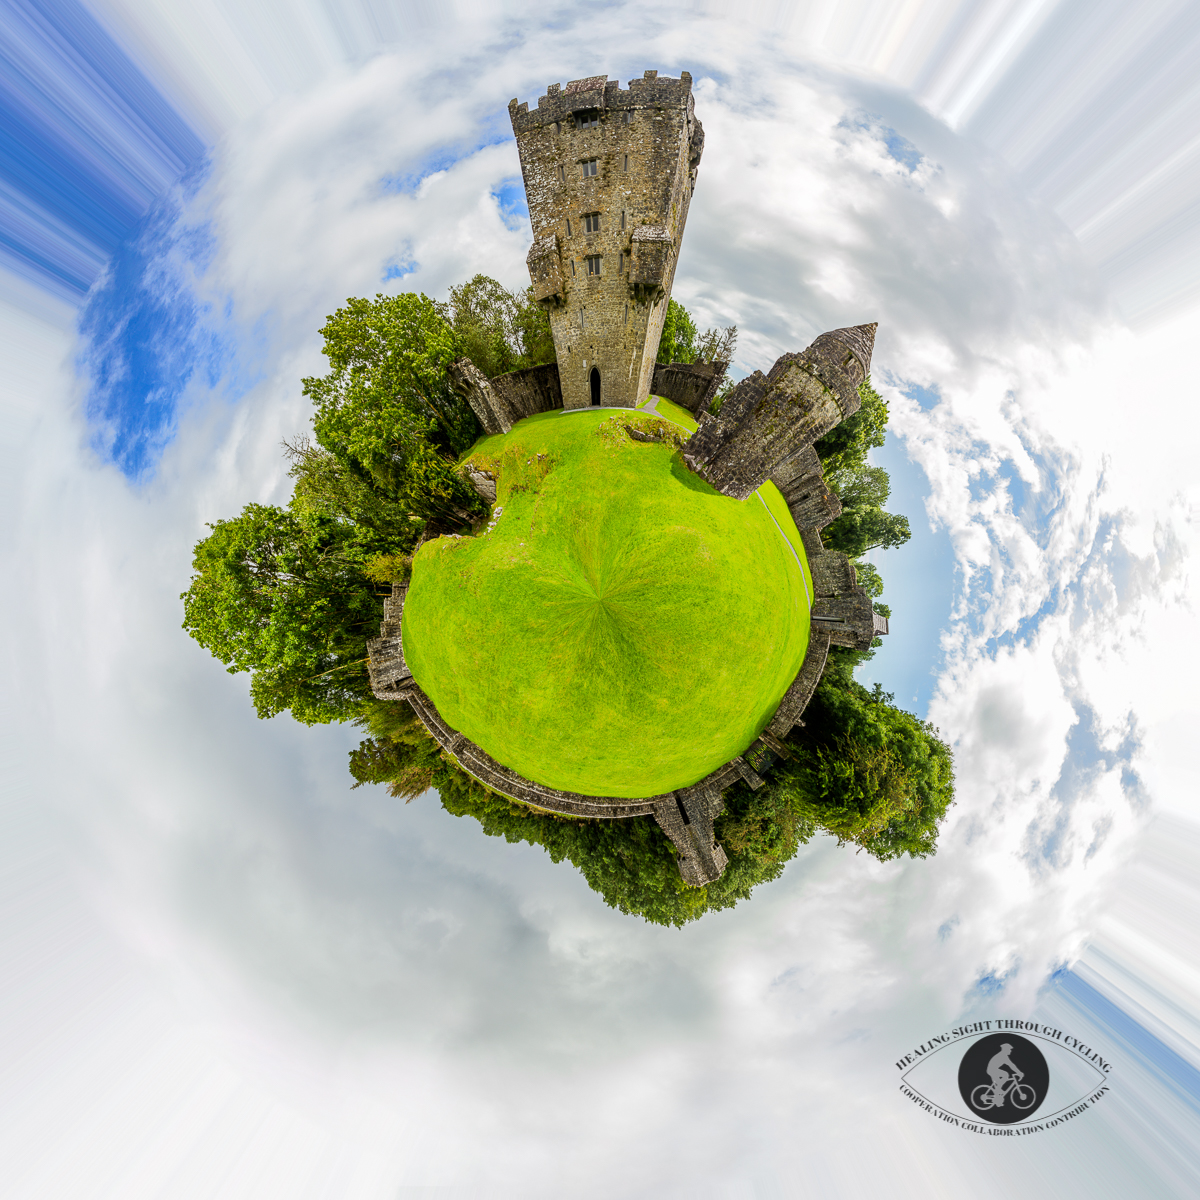 Aughnanure castle - Little planet - County Galway